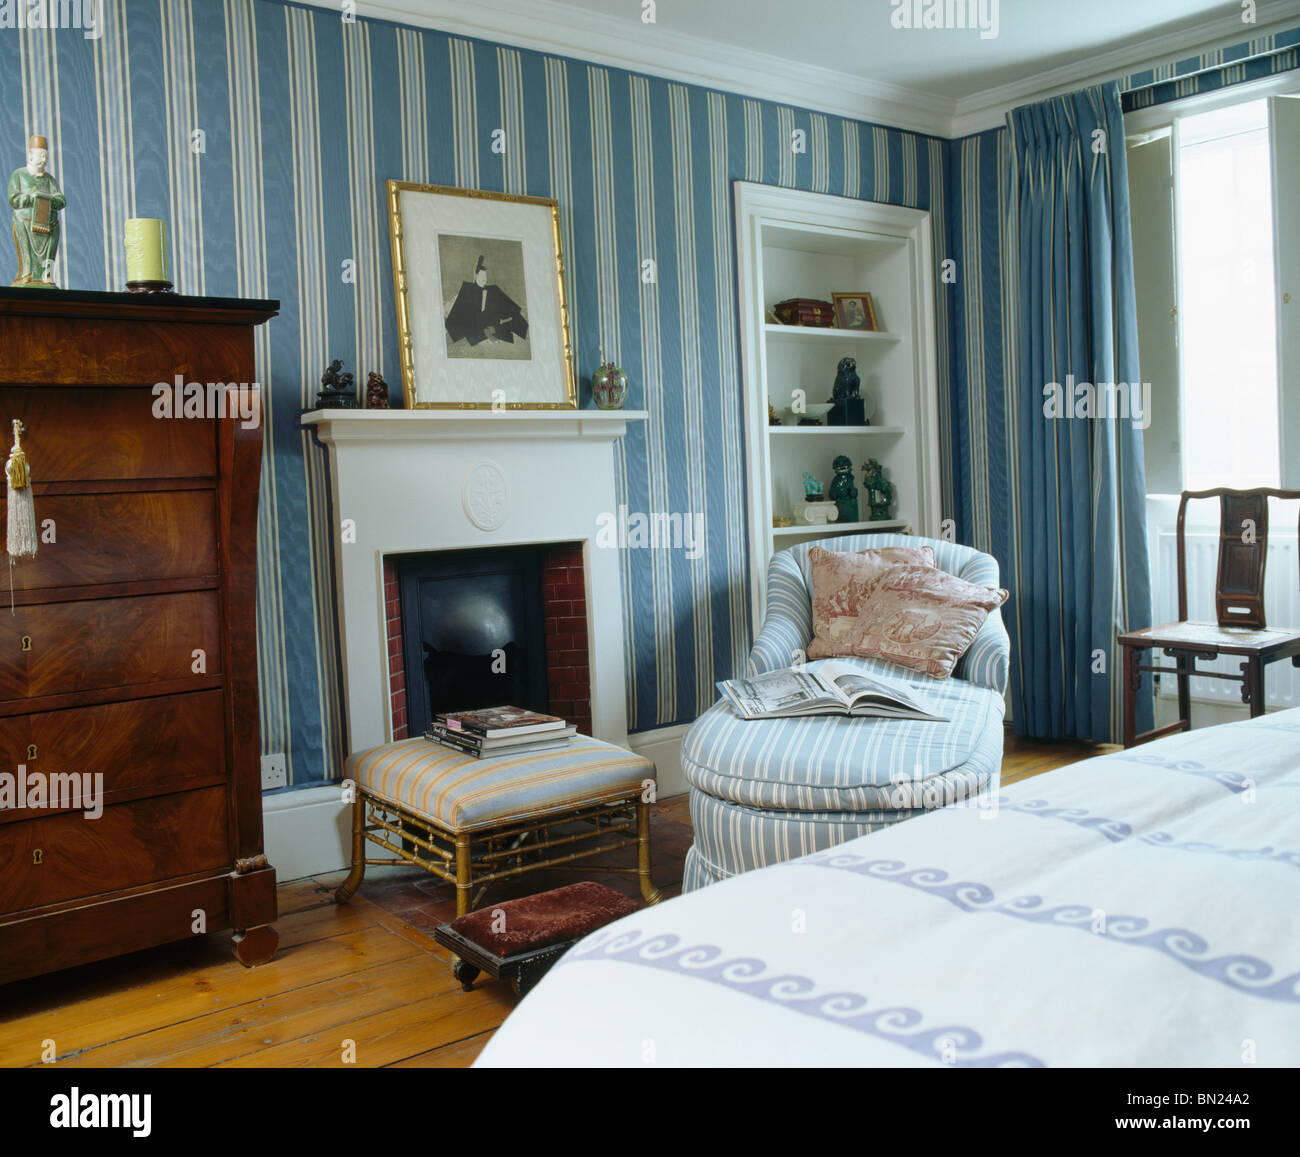 Blue Striped Wallpaper In Townhouse Bedroom With Striped Chaise Longue  Beside Fireplace